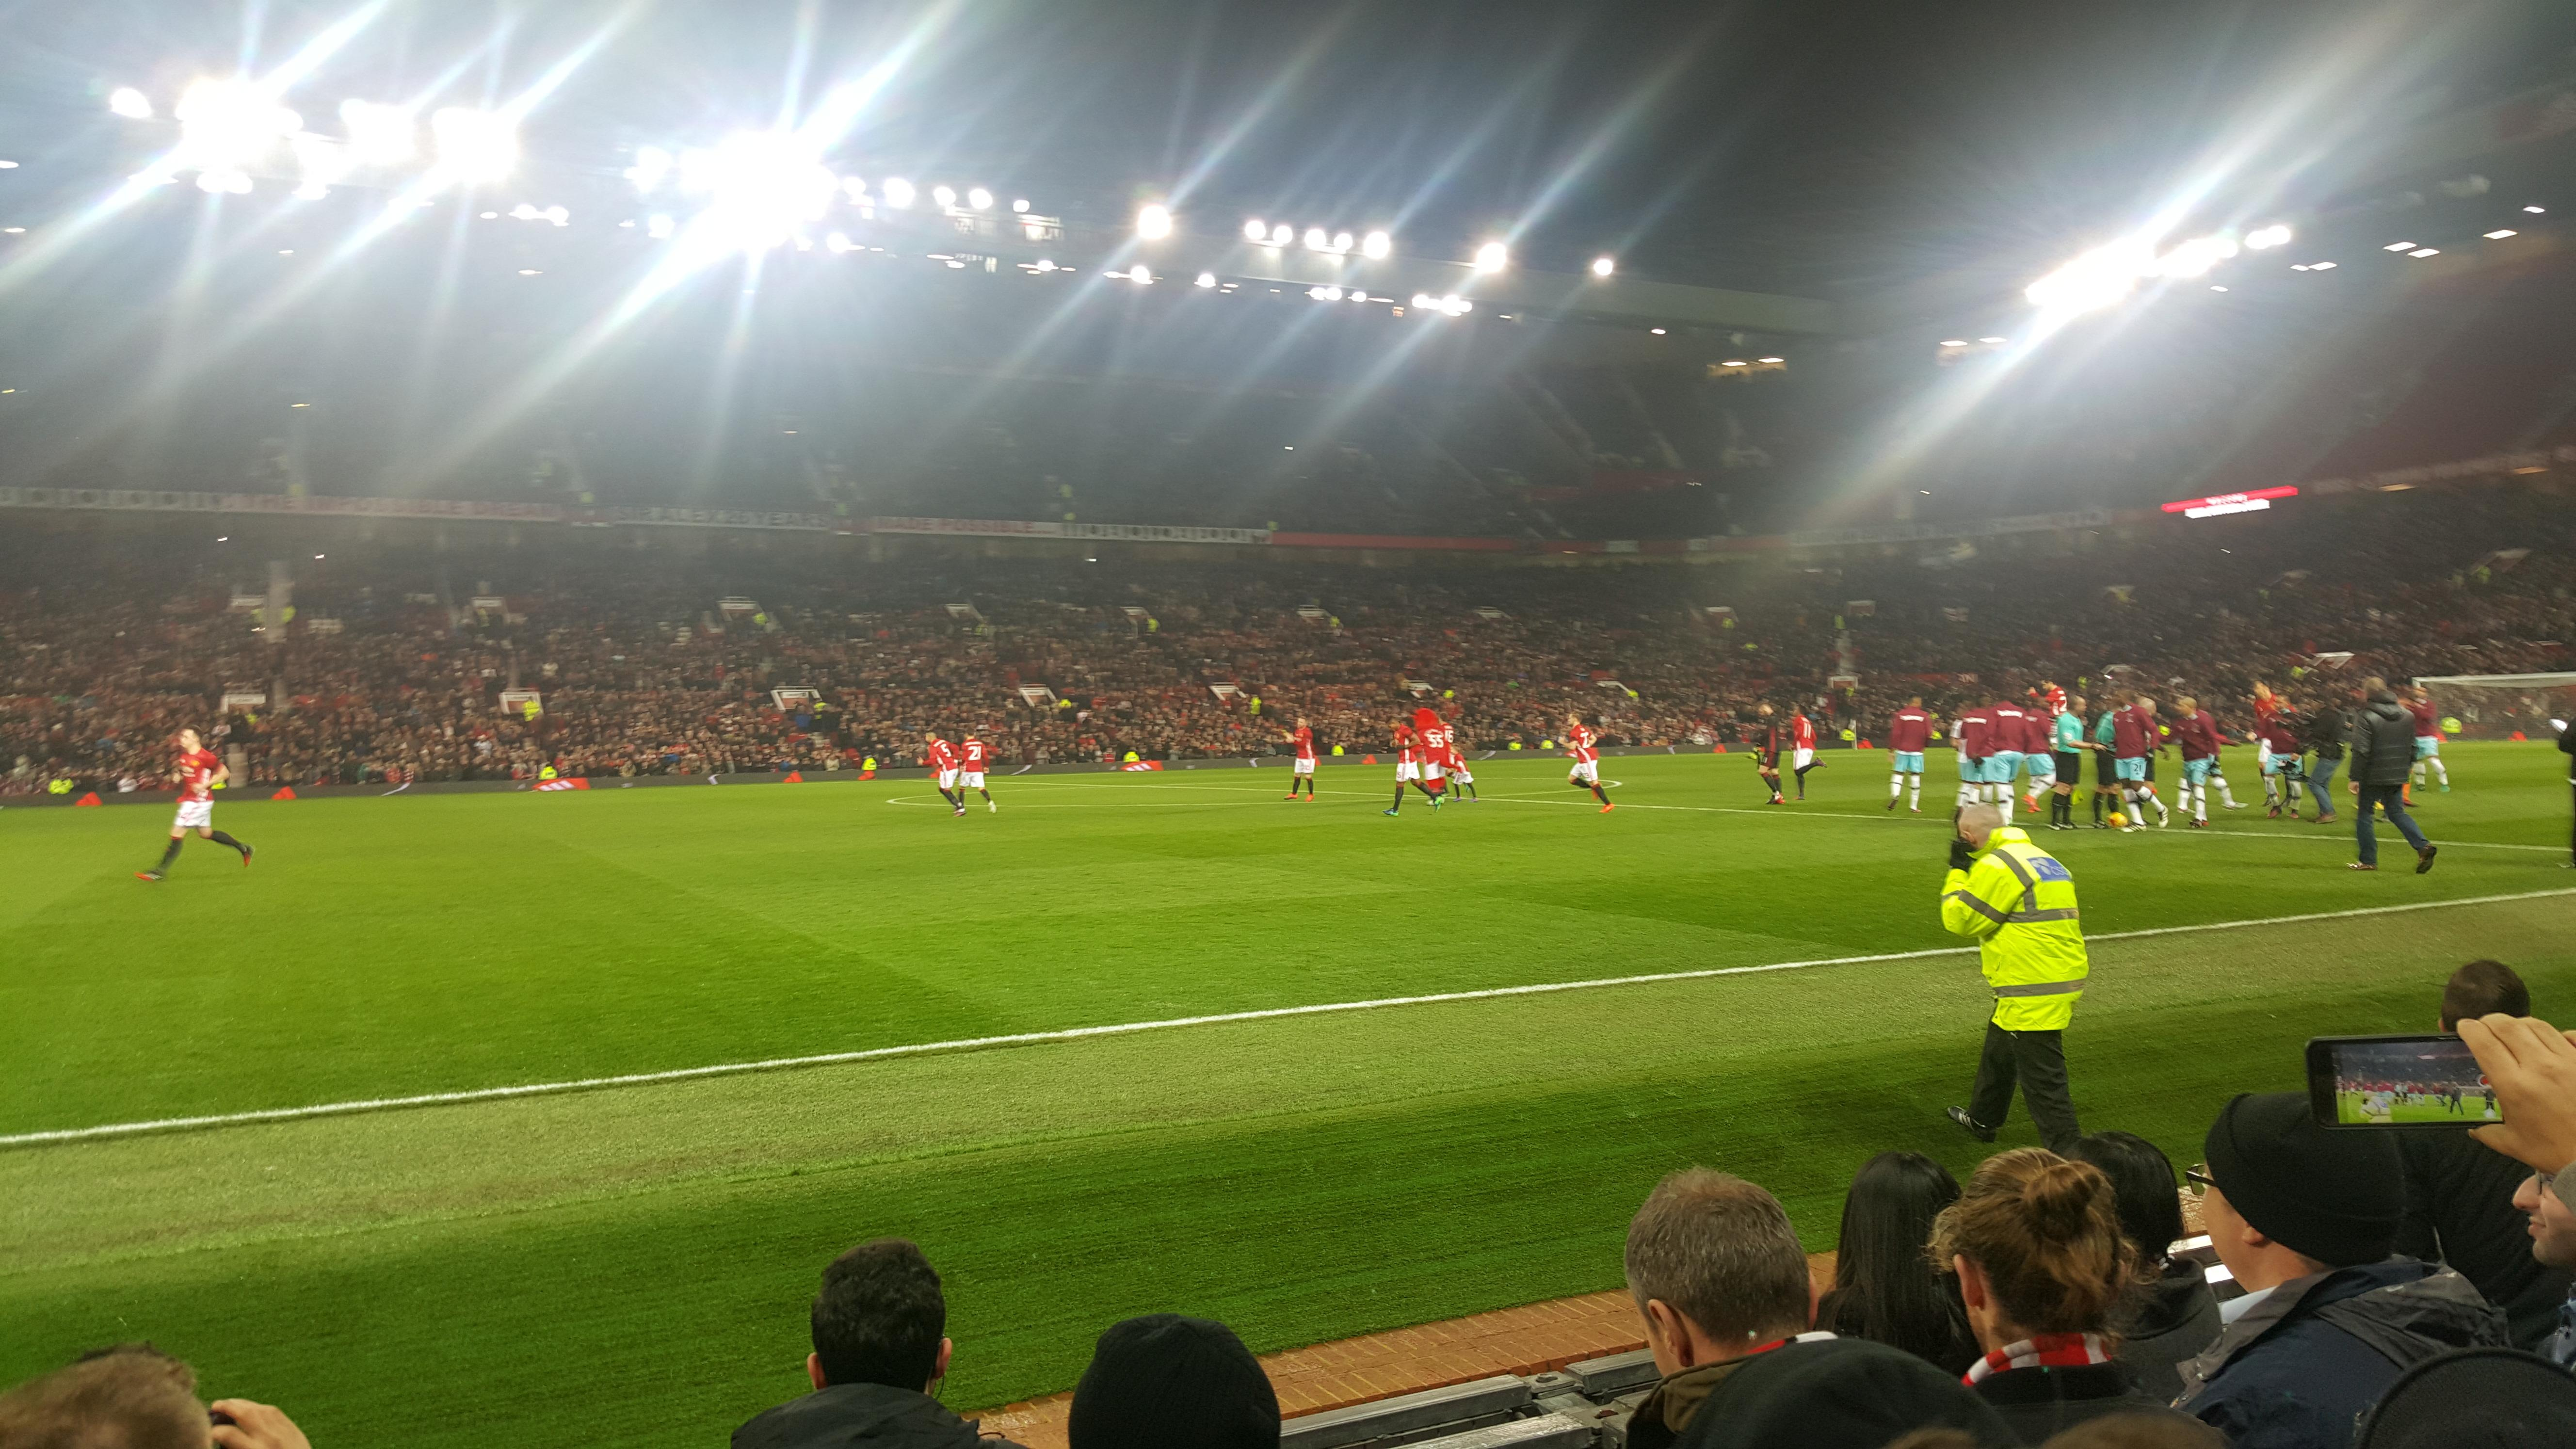 Old Trafford Section Sth123 Row EE Seat 176